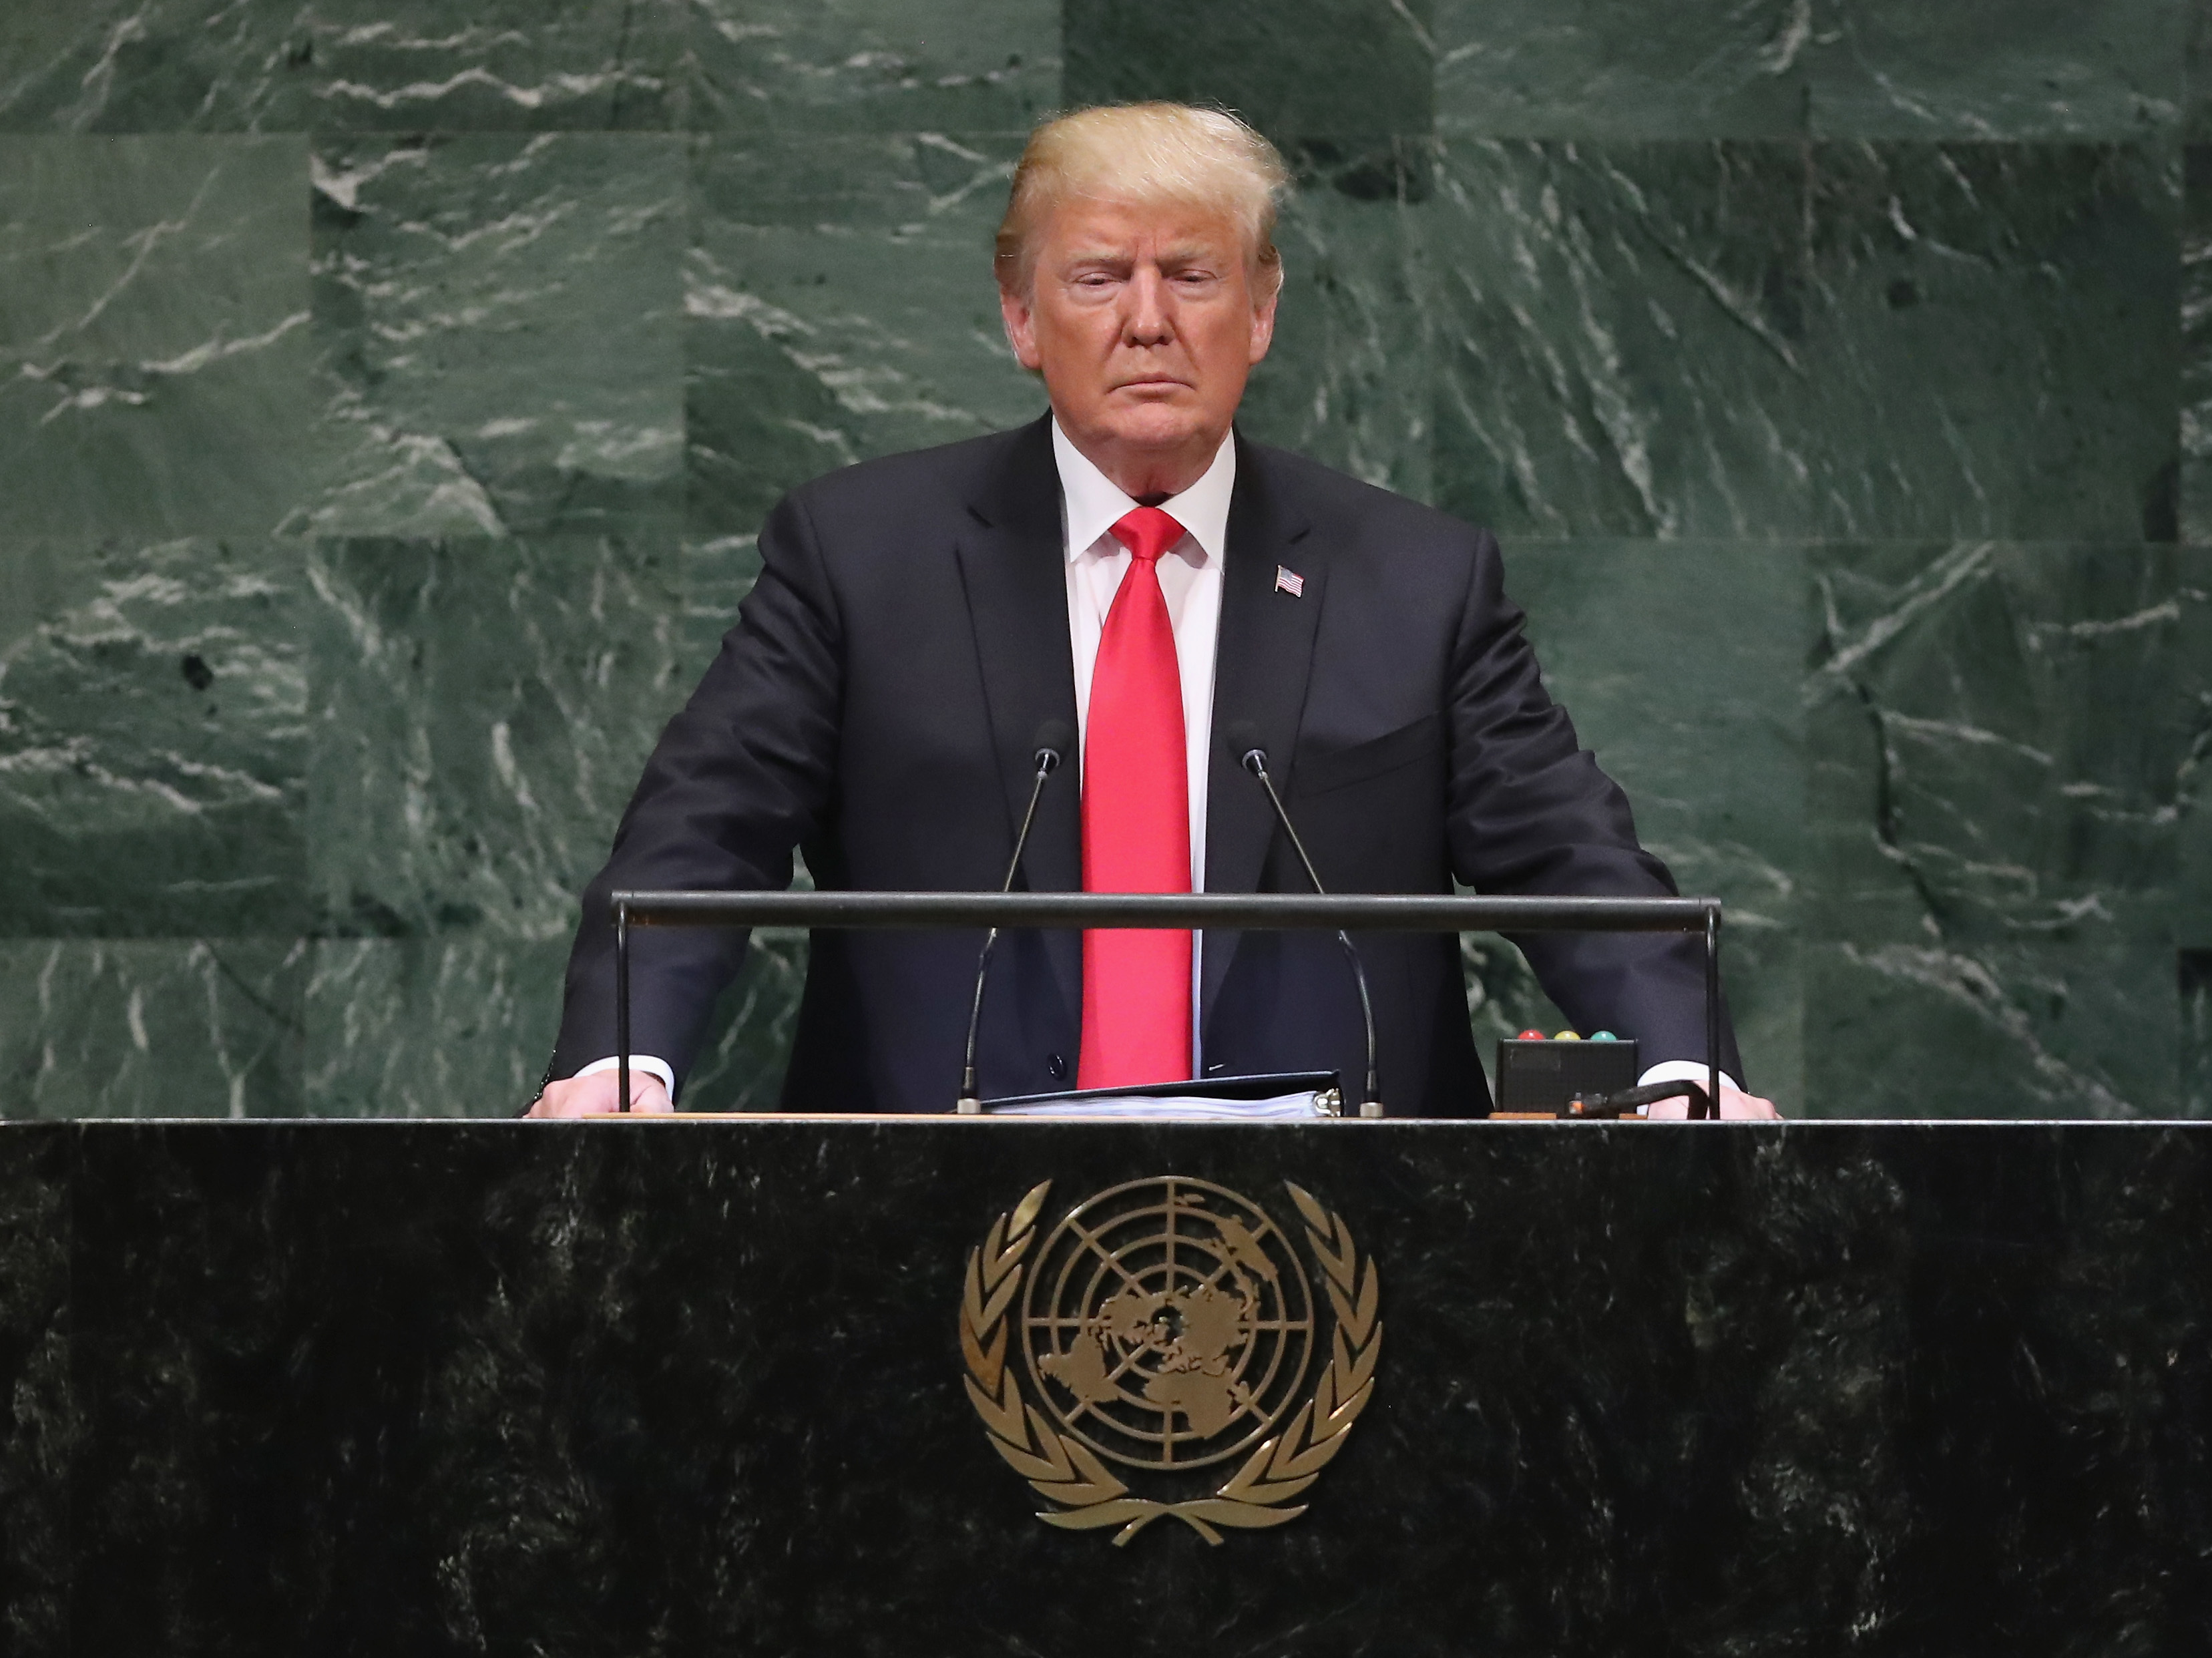 Trump Returns To The U.N. This Week Facing Growing Unease About U.S. Leadership